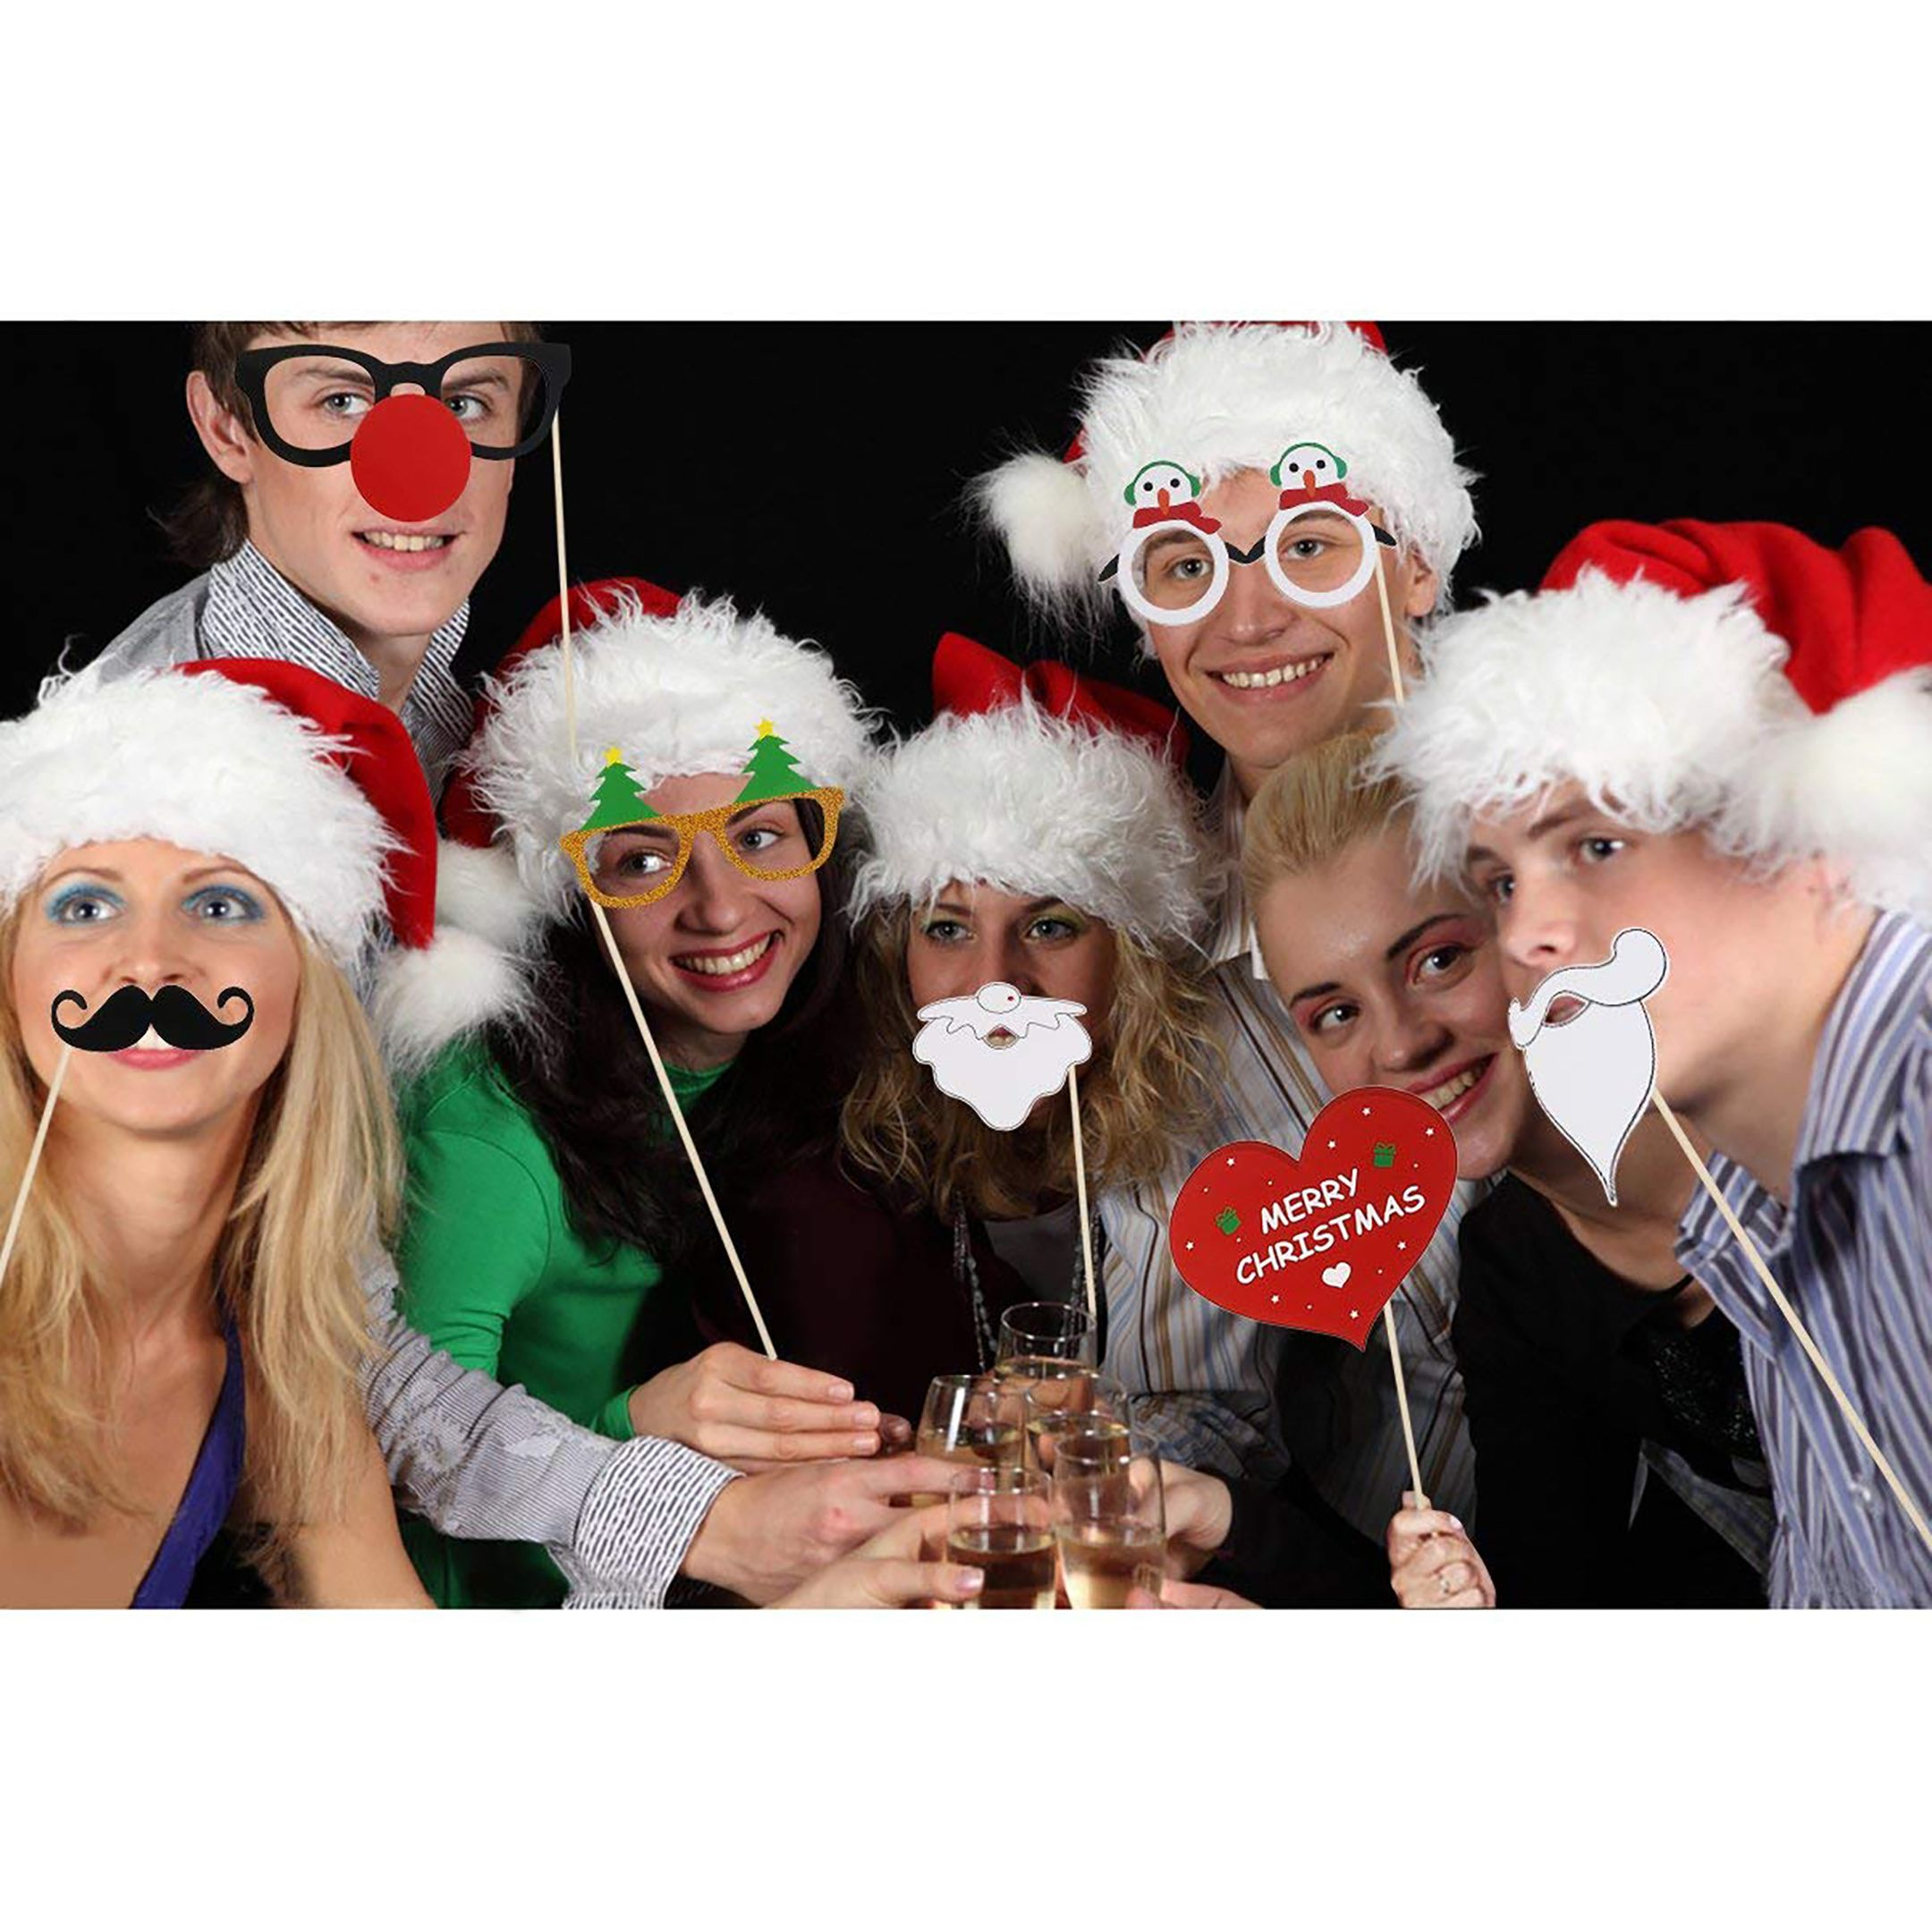 8b34d8d96c38a 30 Fun Christmas Games to Play With the Family - Homemade Christmas Party  Games